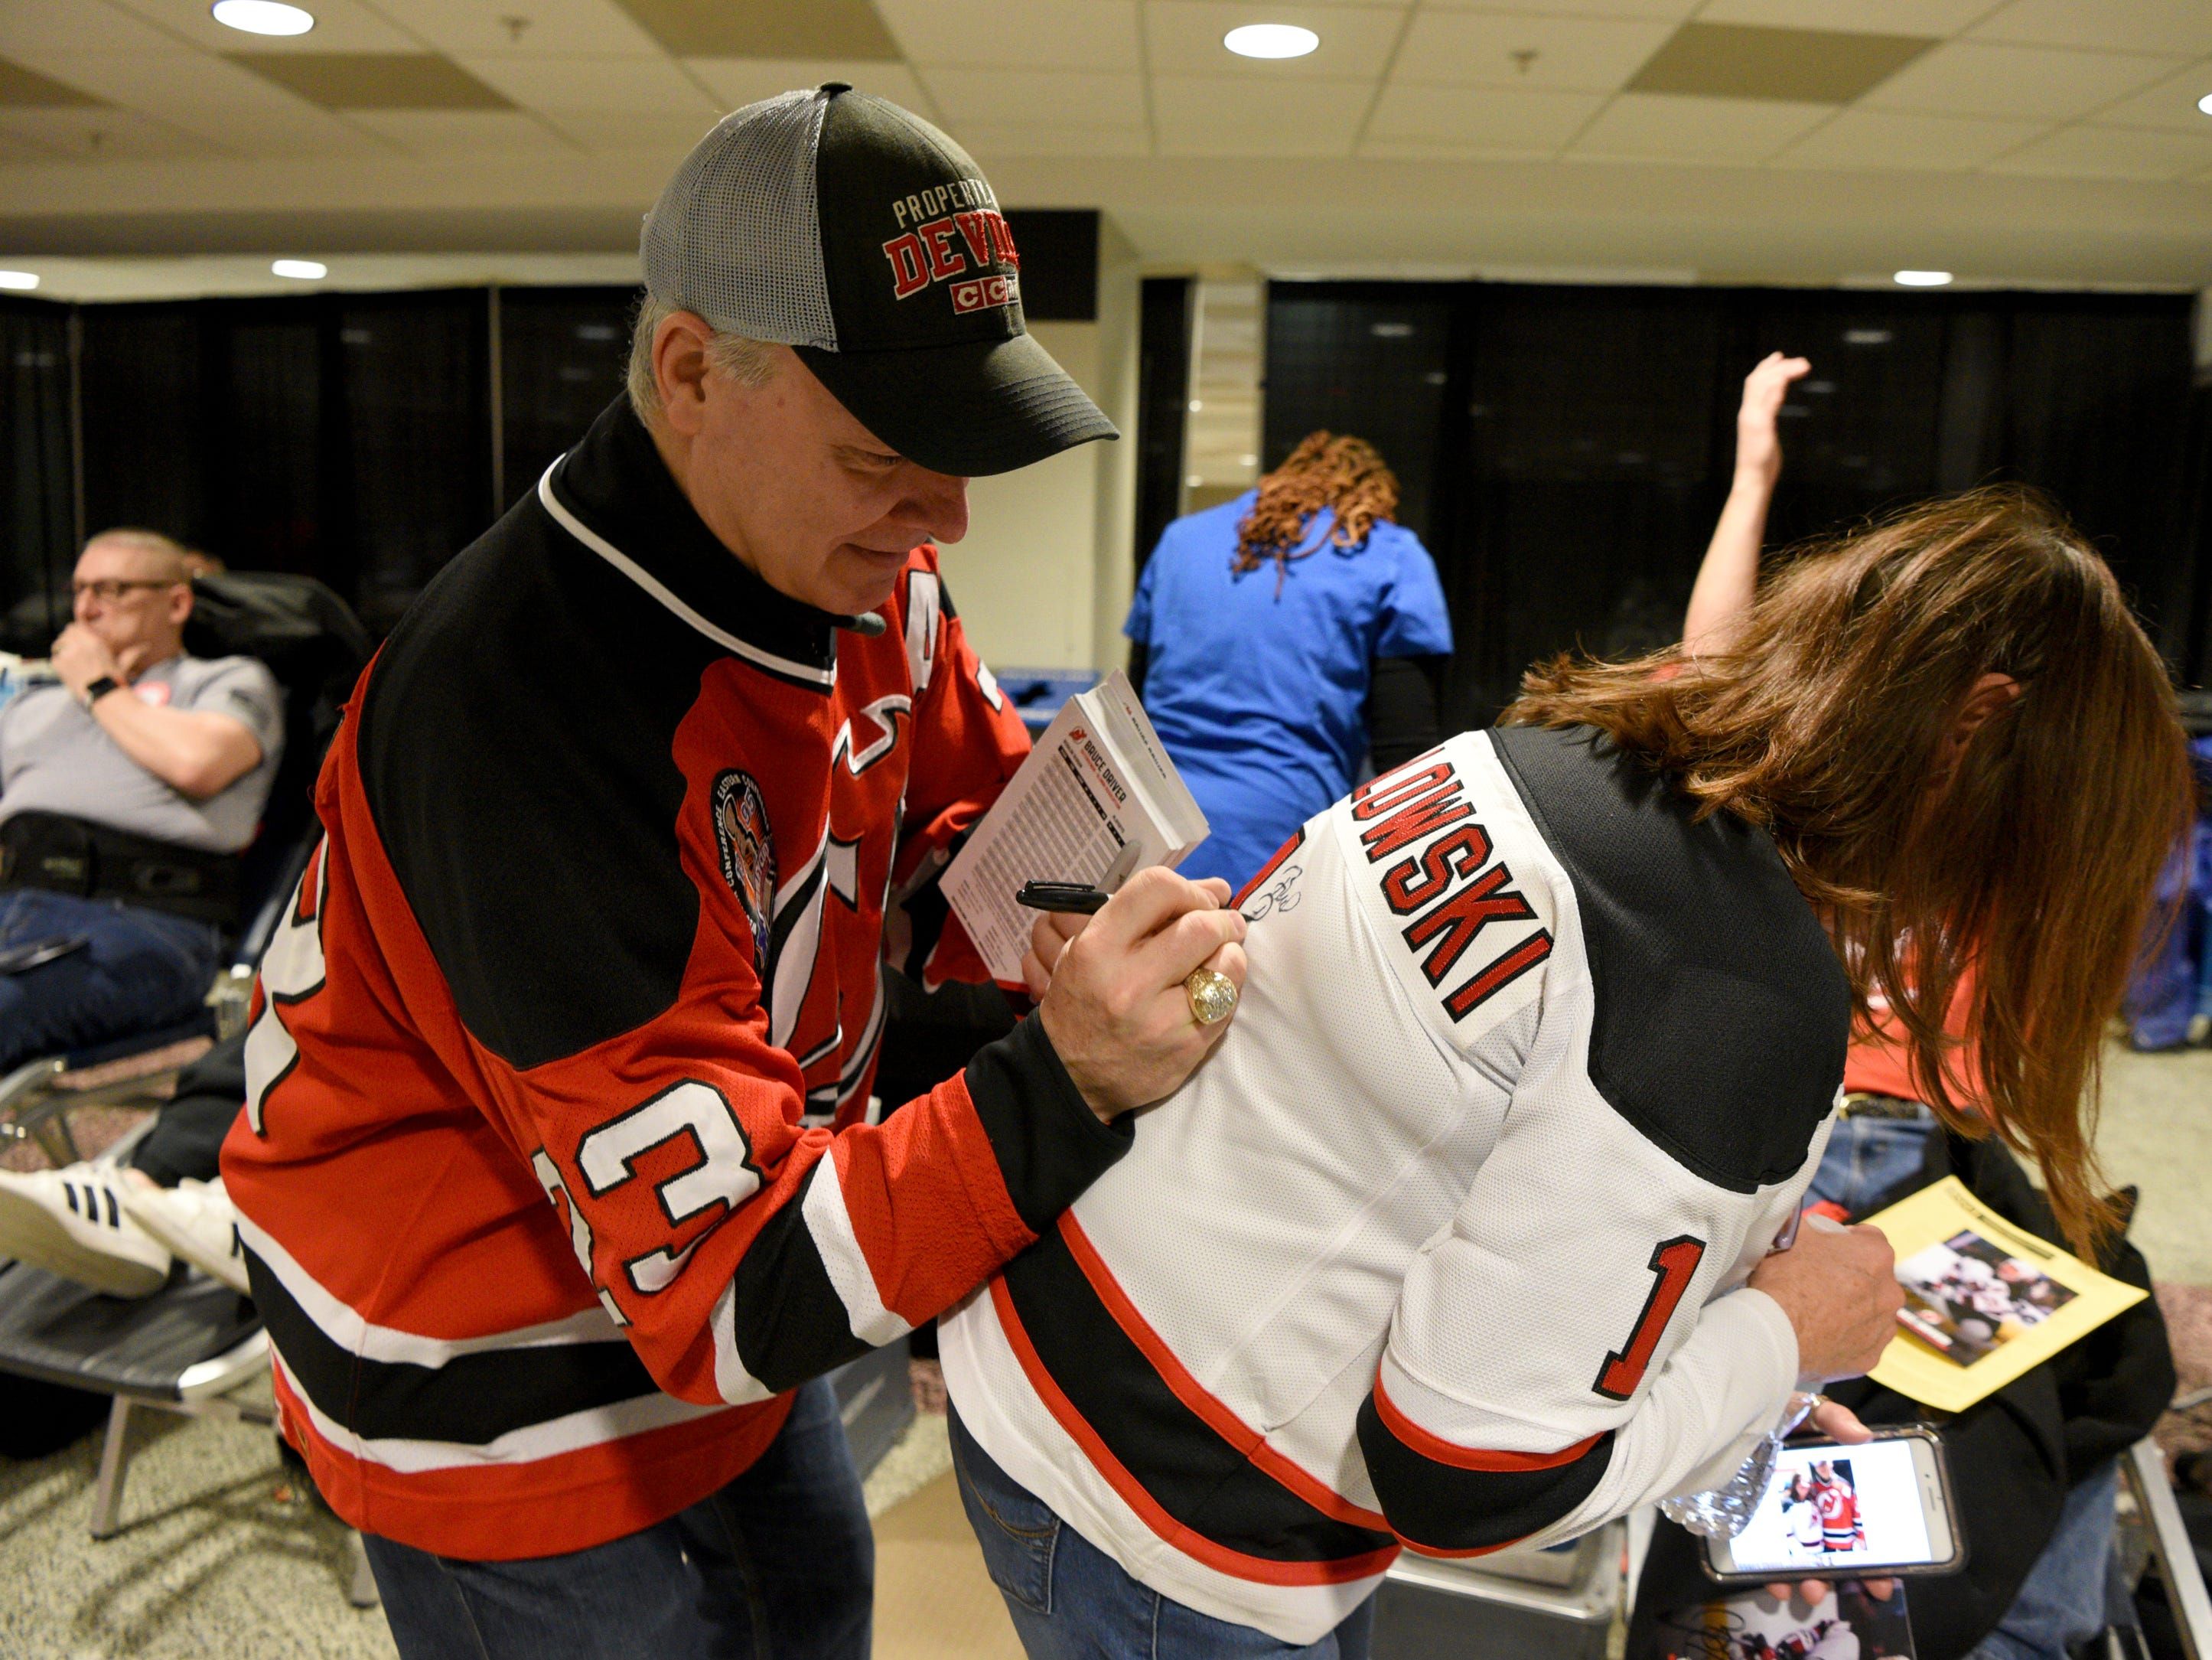 The New Jersey Devils and RWJBarnabas Health hosted their third annual blood drive in coordination with the American Red Cross on Sunday, March 10, 2019 at the Prudential Center in Newark.  Devils' alumni Bruce Driver, a member of the 1995 Devils Stanley Cup winning team, autographs a jersey for Linda Michalowski of Florham Park.